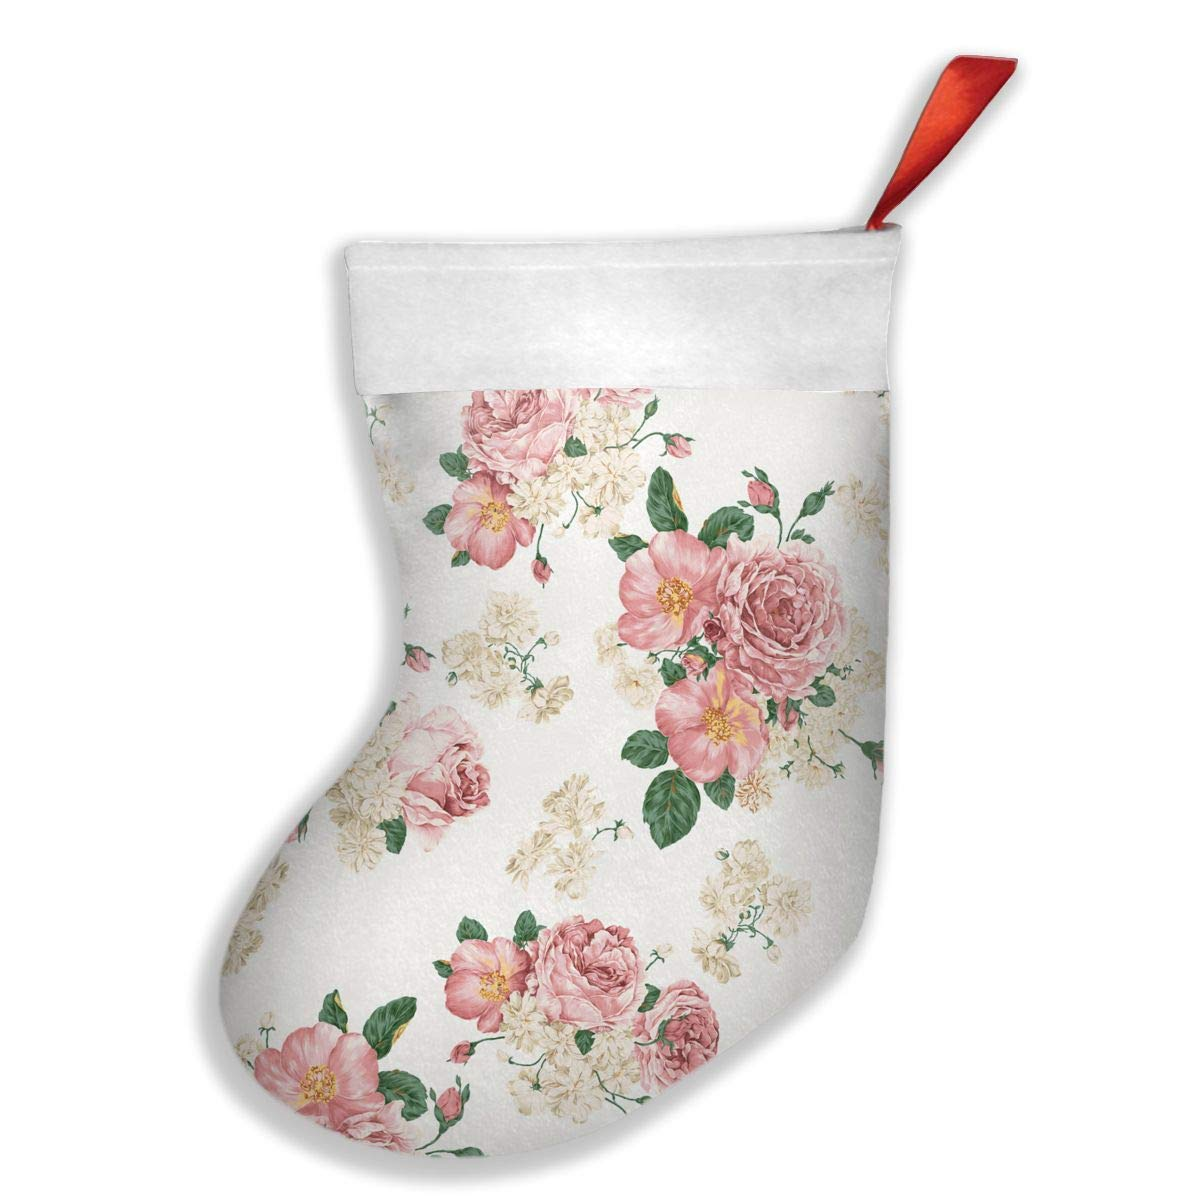 PO1 UP Flower Floral 1 Christmas Stockings